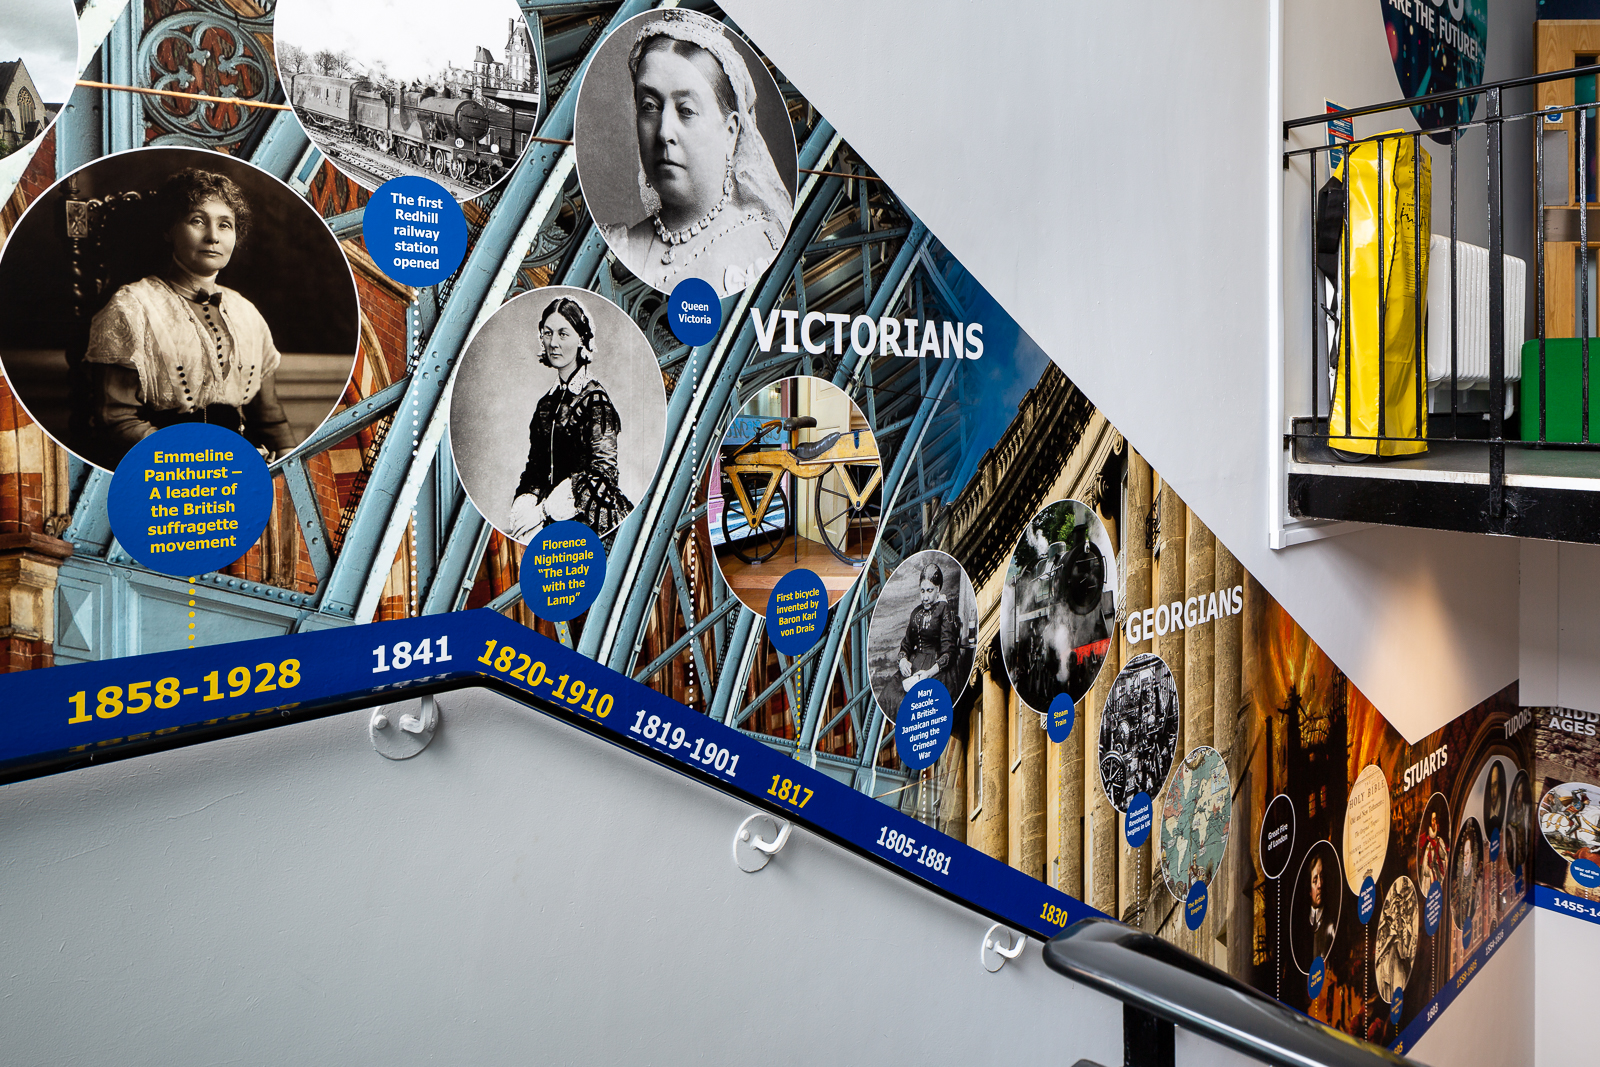 School corridor image featuring a bespoke history timeline wall art feature